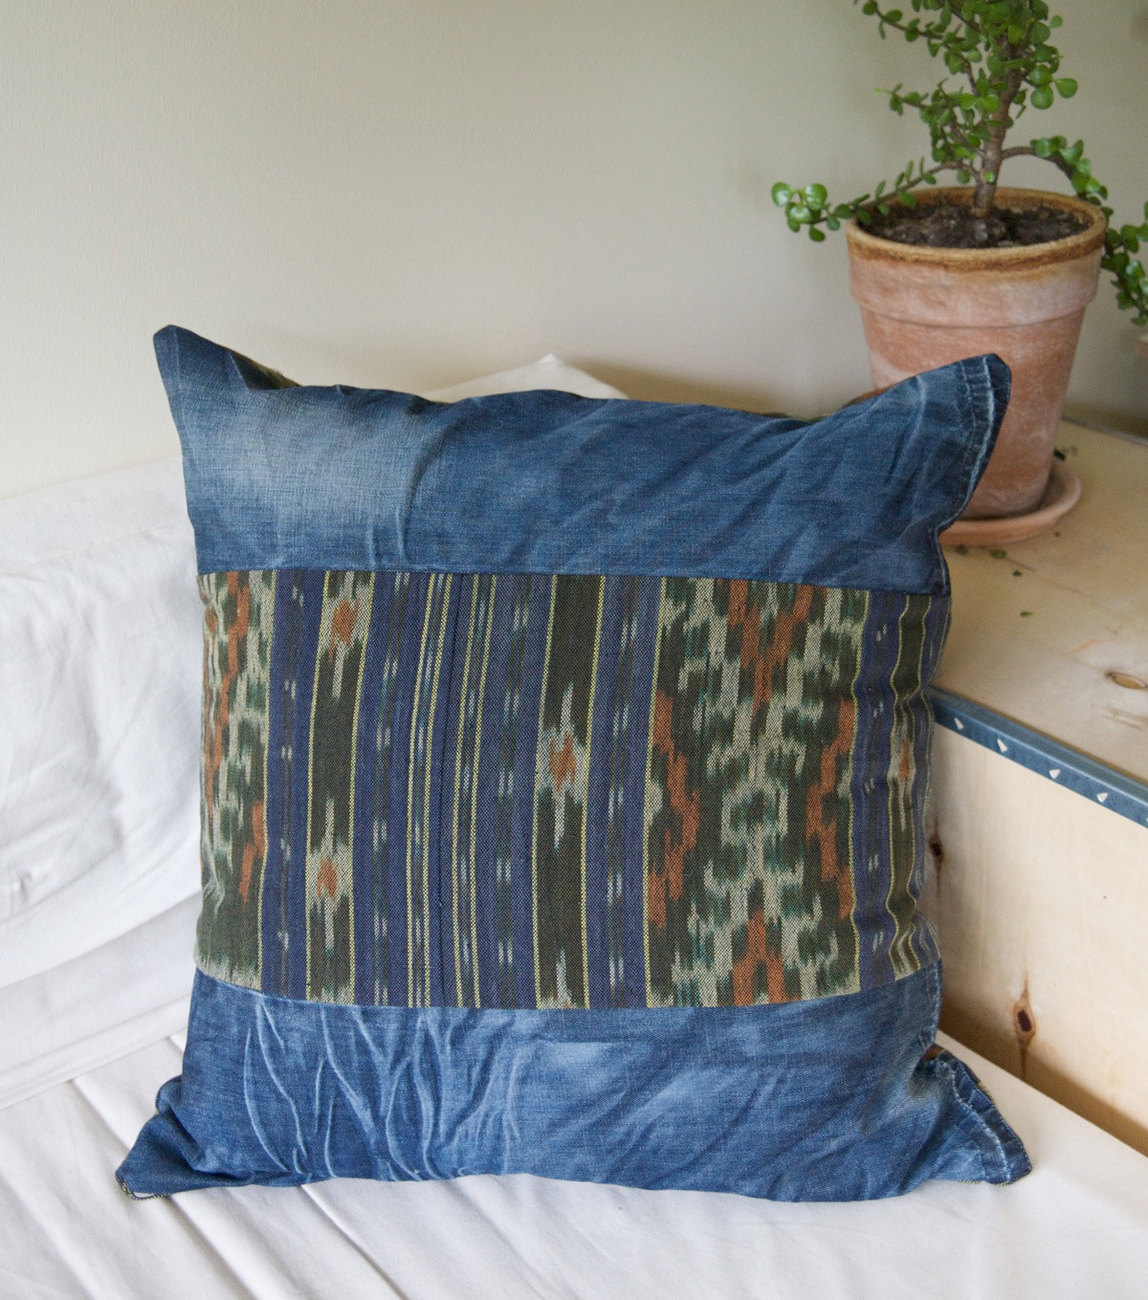 Pillow cover made from Indonesian Ikat and recycled jeans - GENUINE IKAT